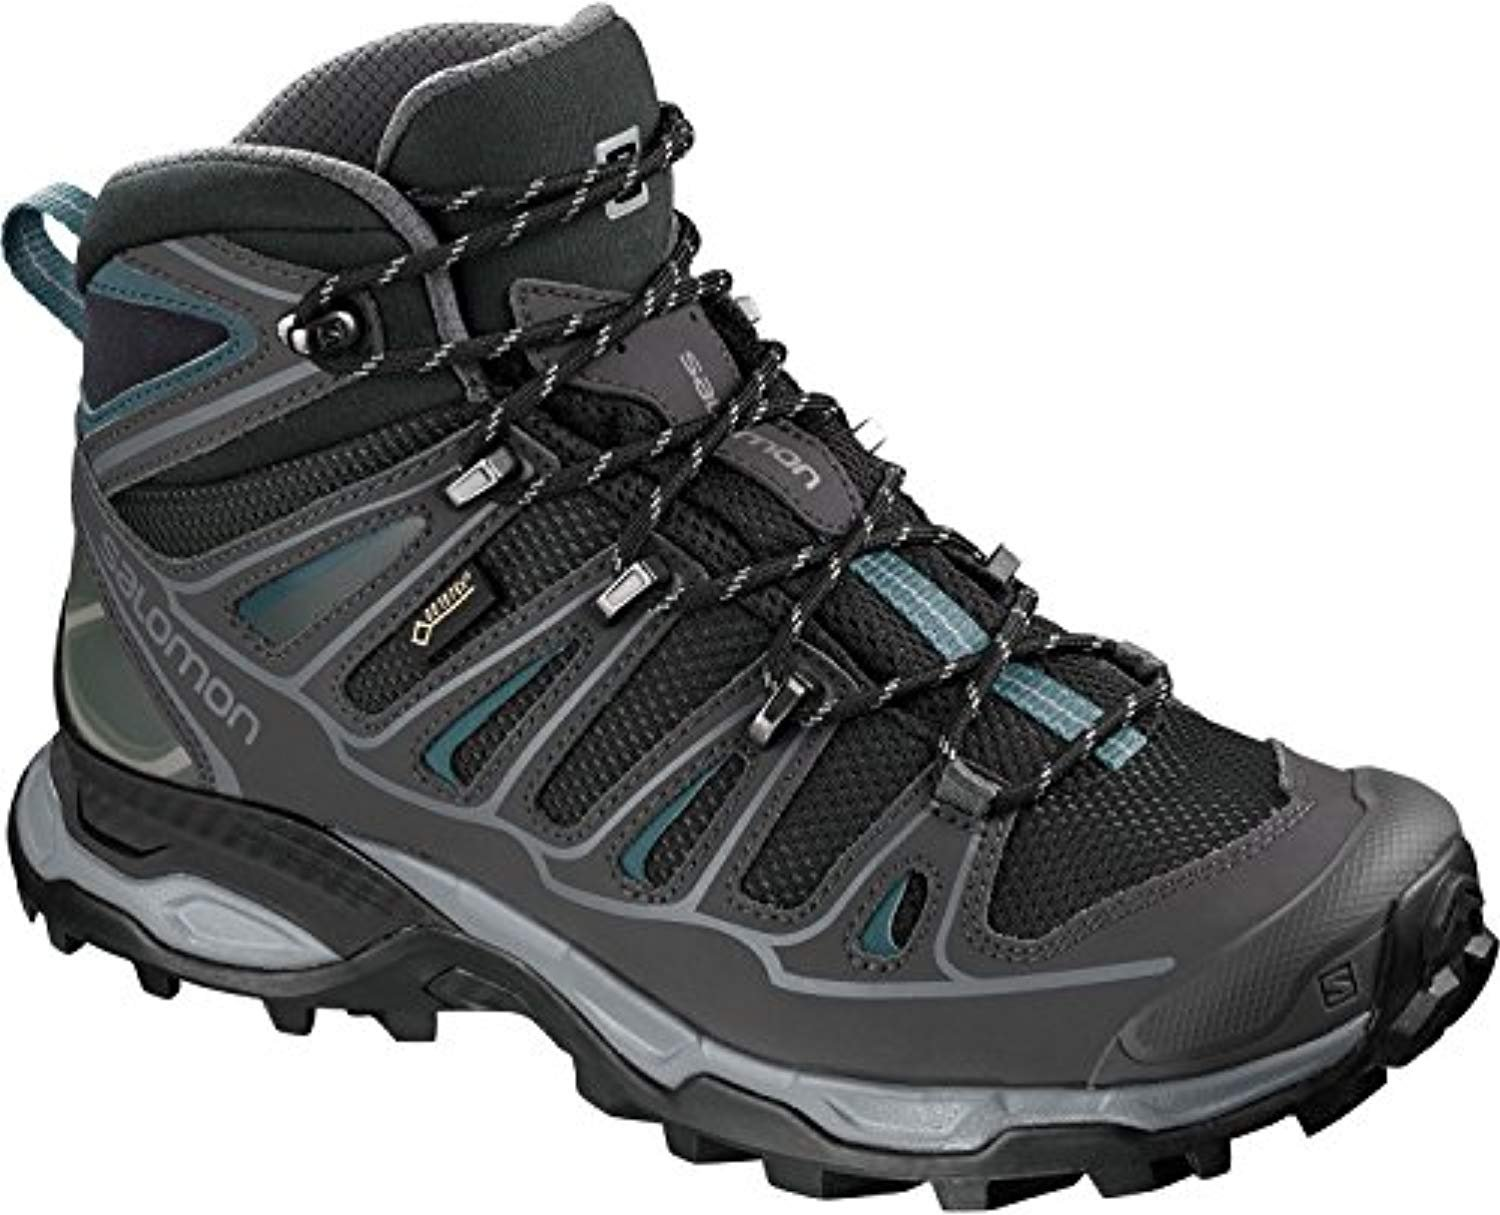 Salomon Women's X Ultra Mid 2 W Spikes GTX Snow Boot B07BRY4J12 6.5 M US|Black/Magnet/Hydro.